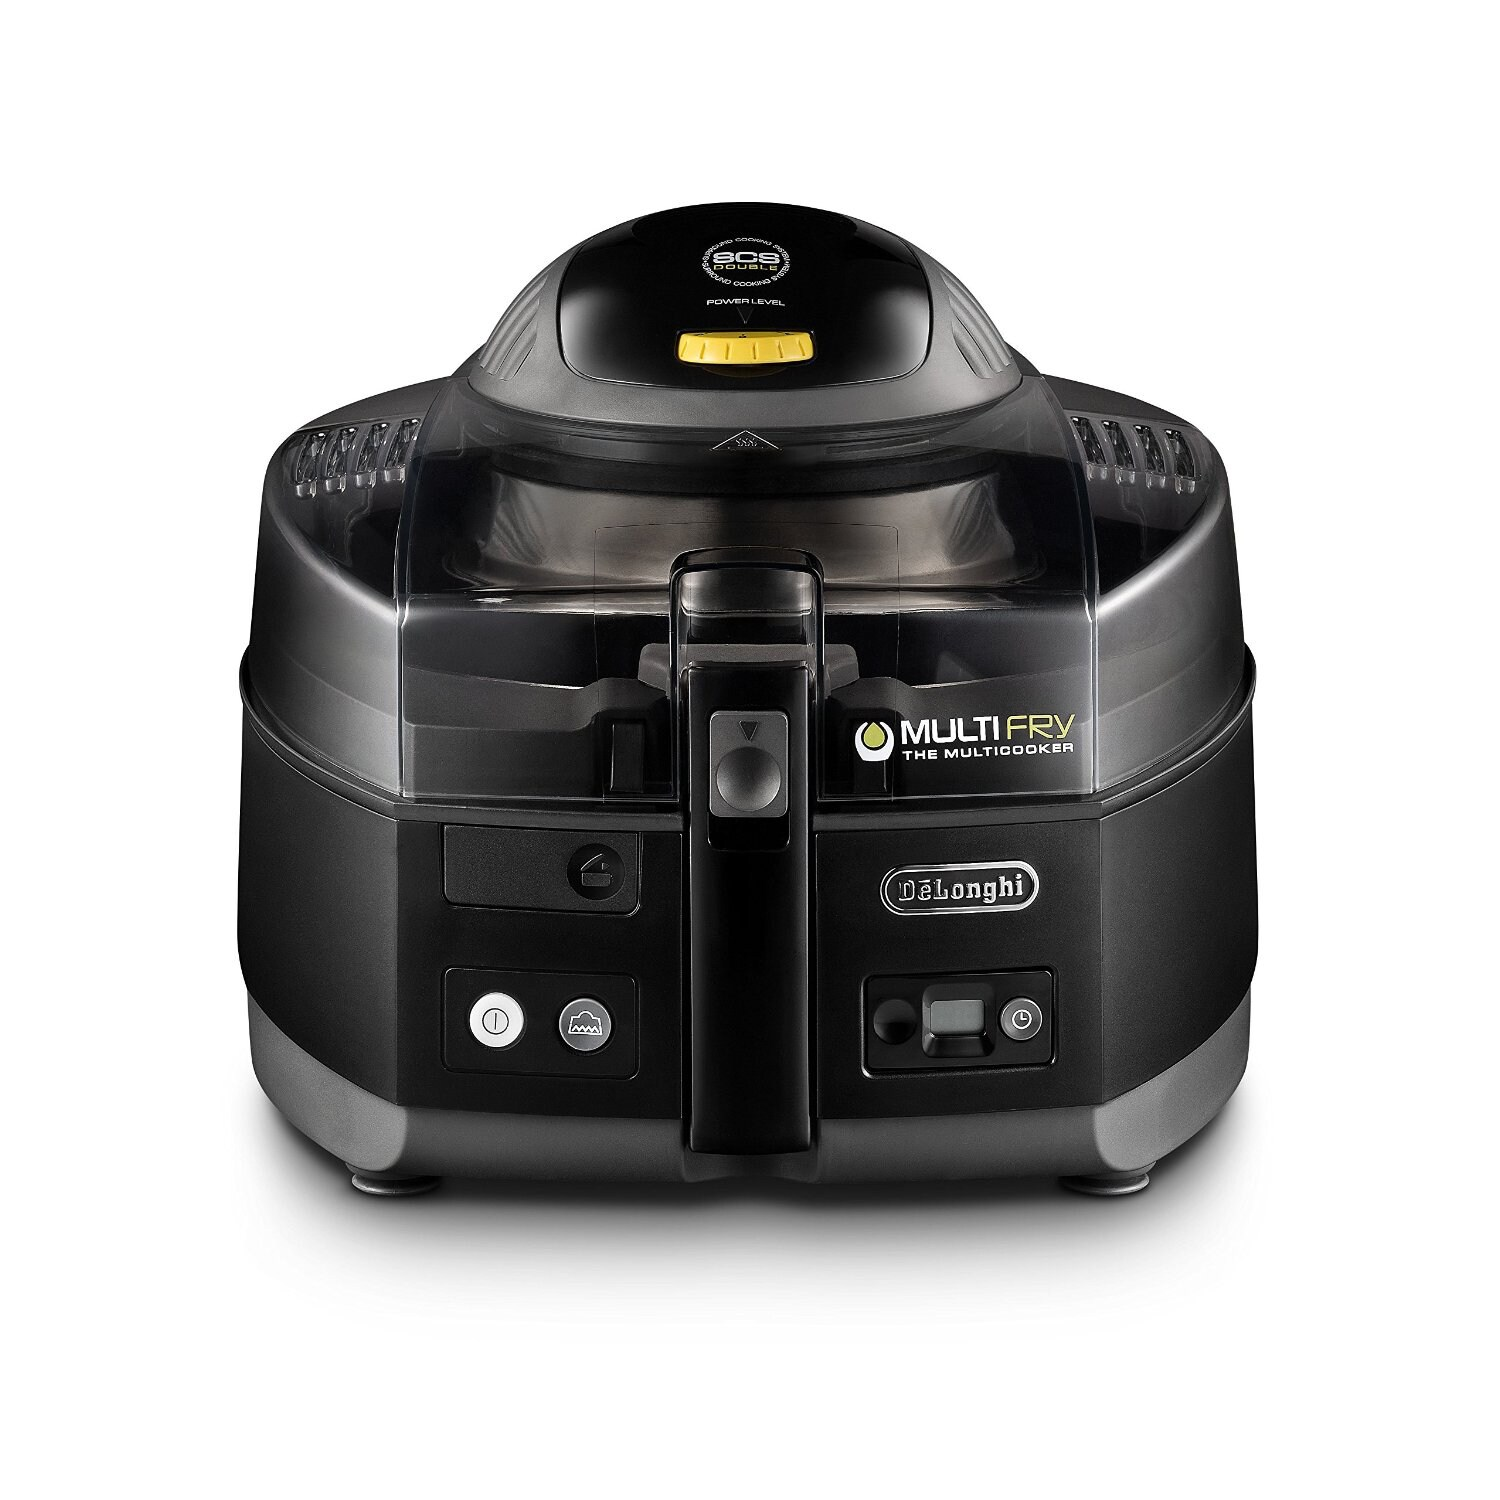 DeLonghi FH1163 Black MultiFry Low Oil Fryer and Multi Cooker DeLonghi MultiFry, Low Oil Fryer and Multi Cooker